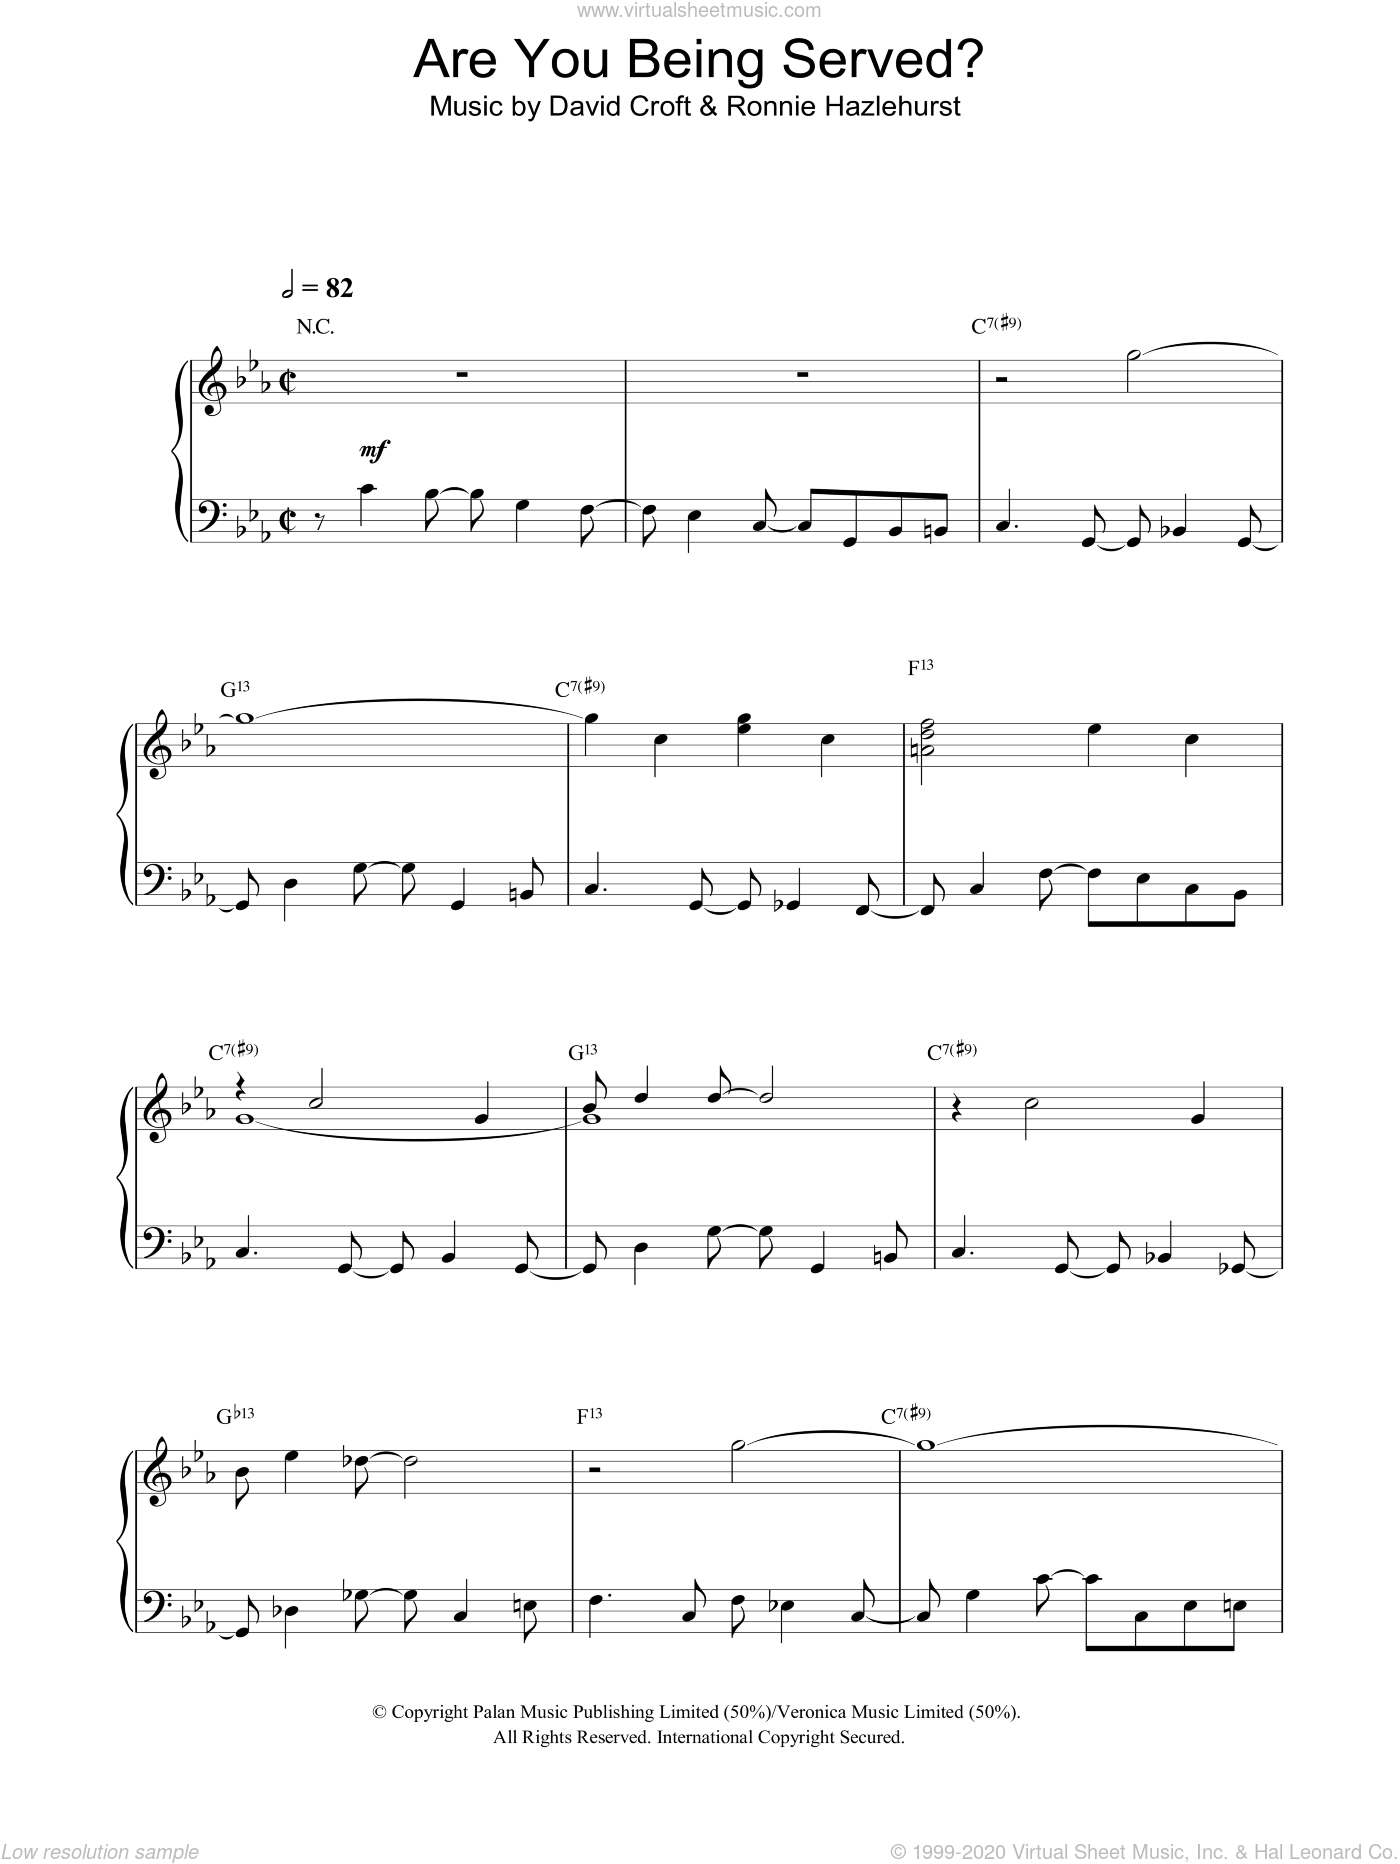 Are You Being Served? sheet music for piano solo by David Croft and Ronnie Hazlehurst, intermediate skill level